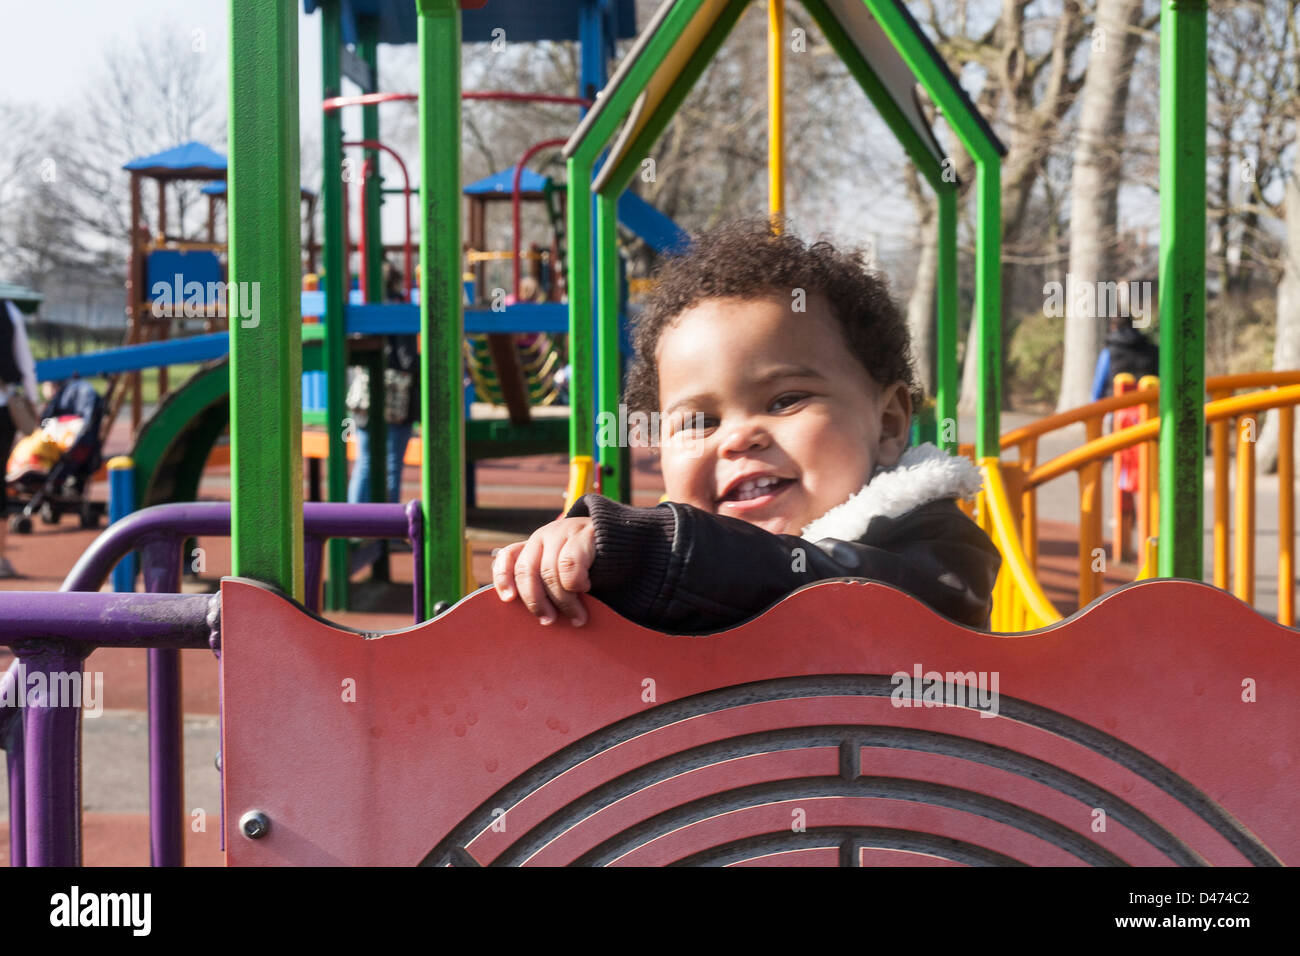 Mixed race toddler baby smiling and playing on climbing frame on a sunny day wearing aviator jacket Stock Photo